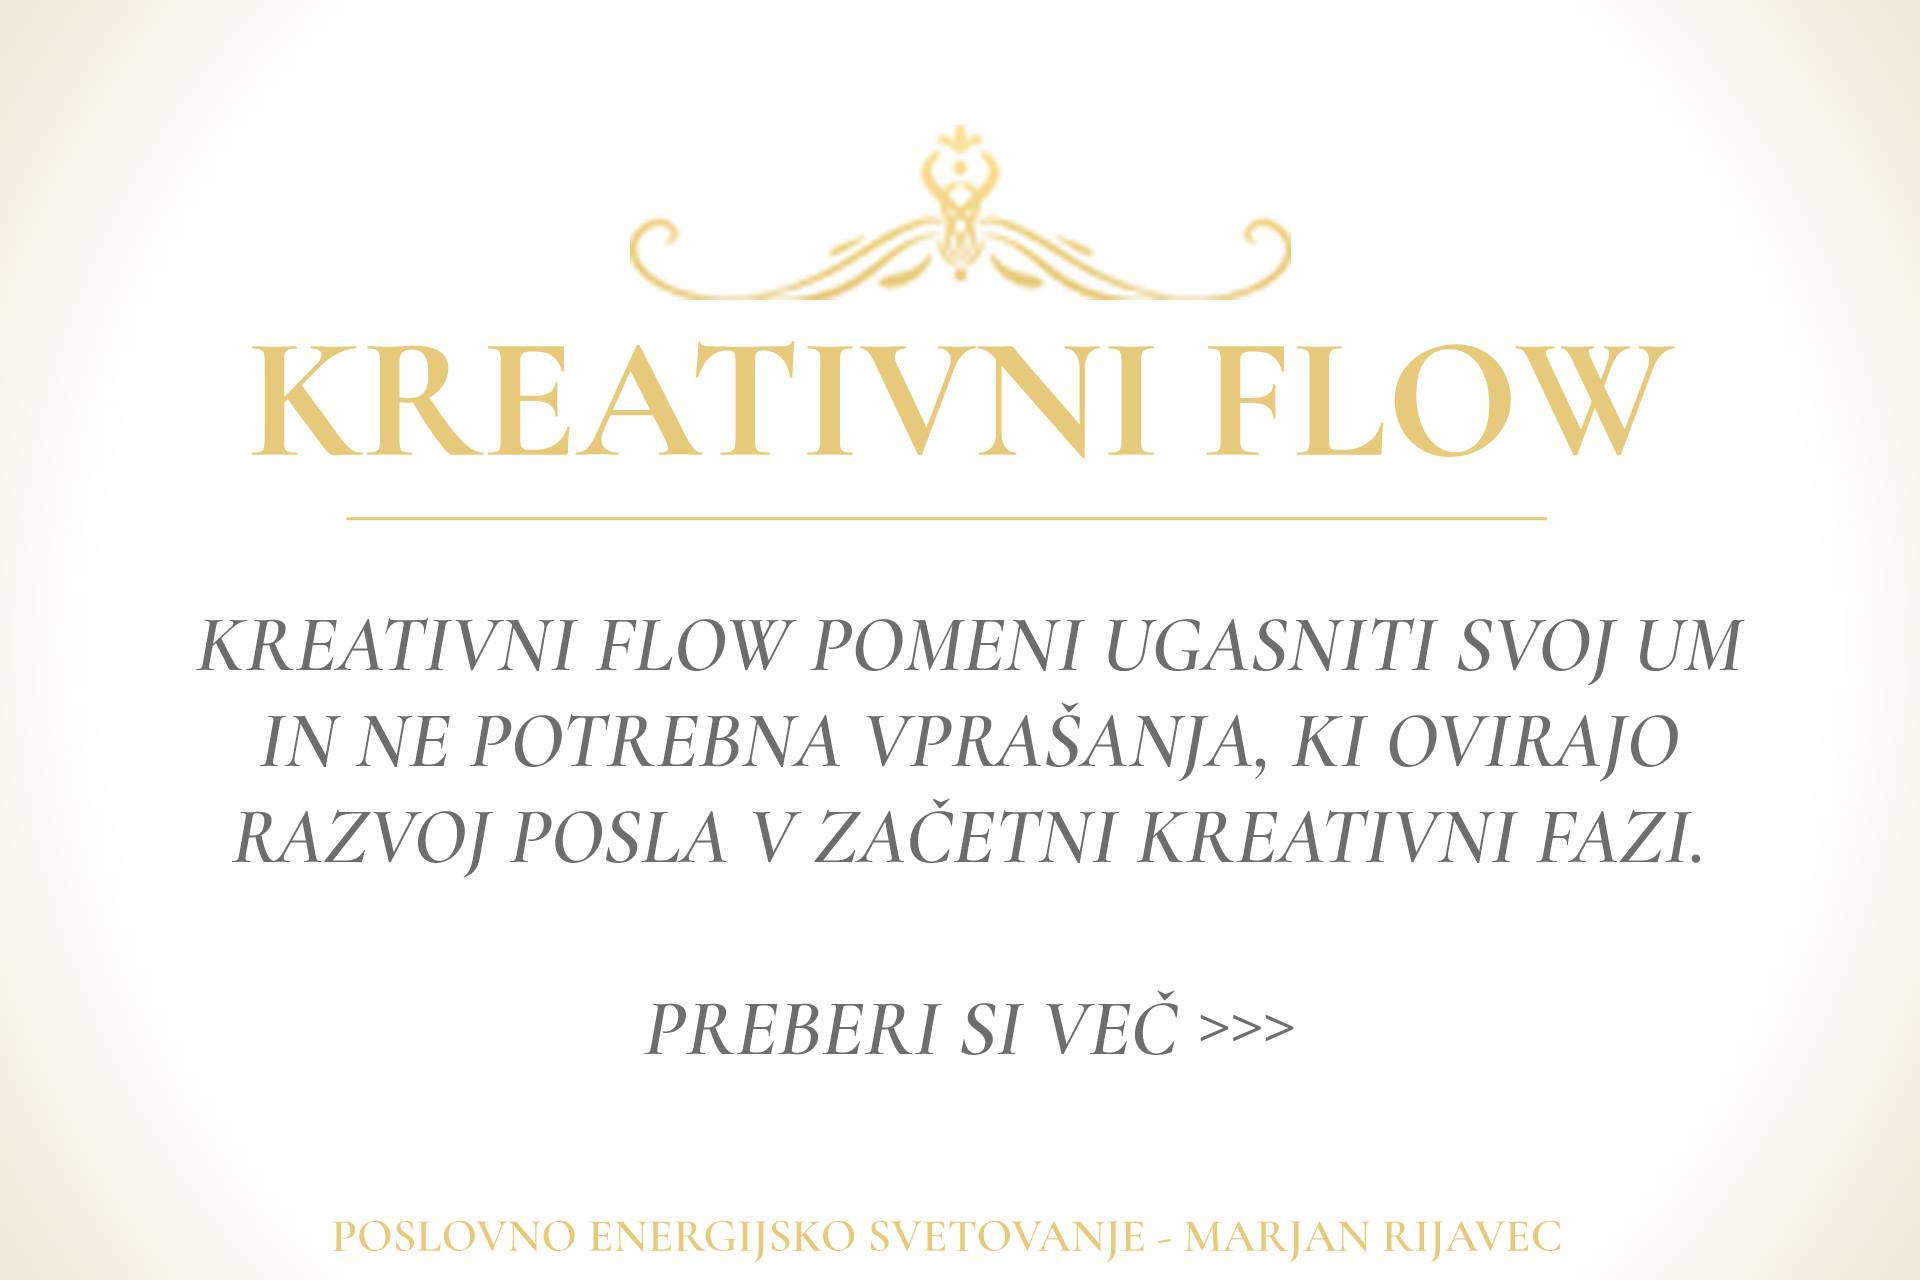 Kreativni flow